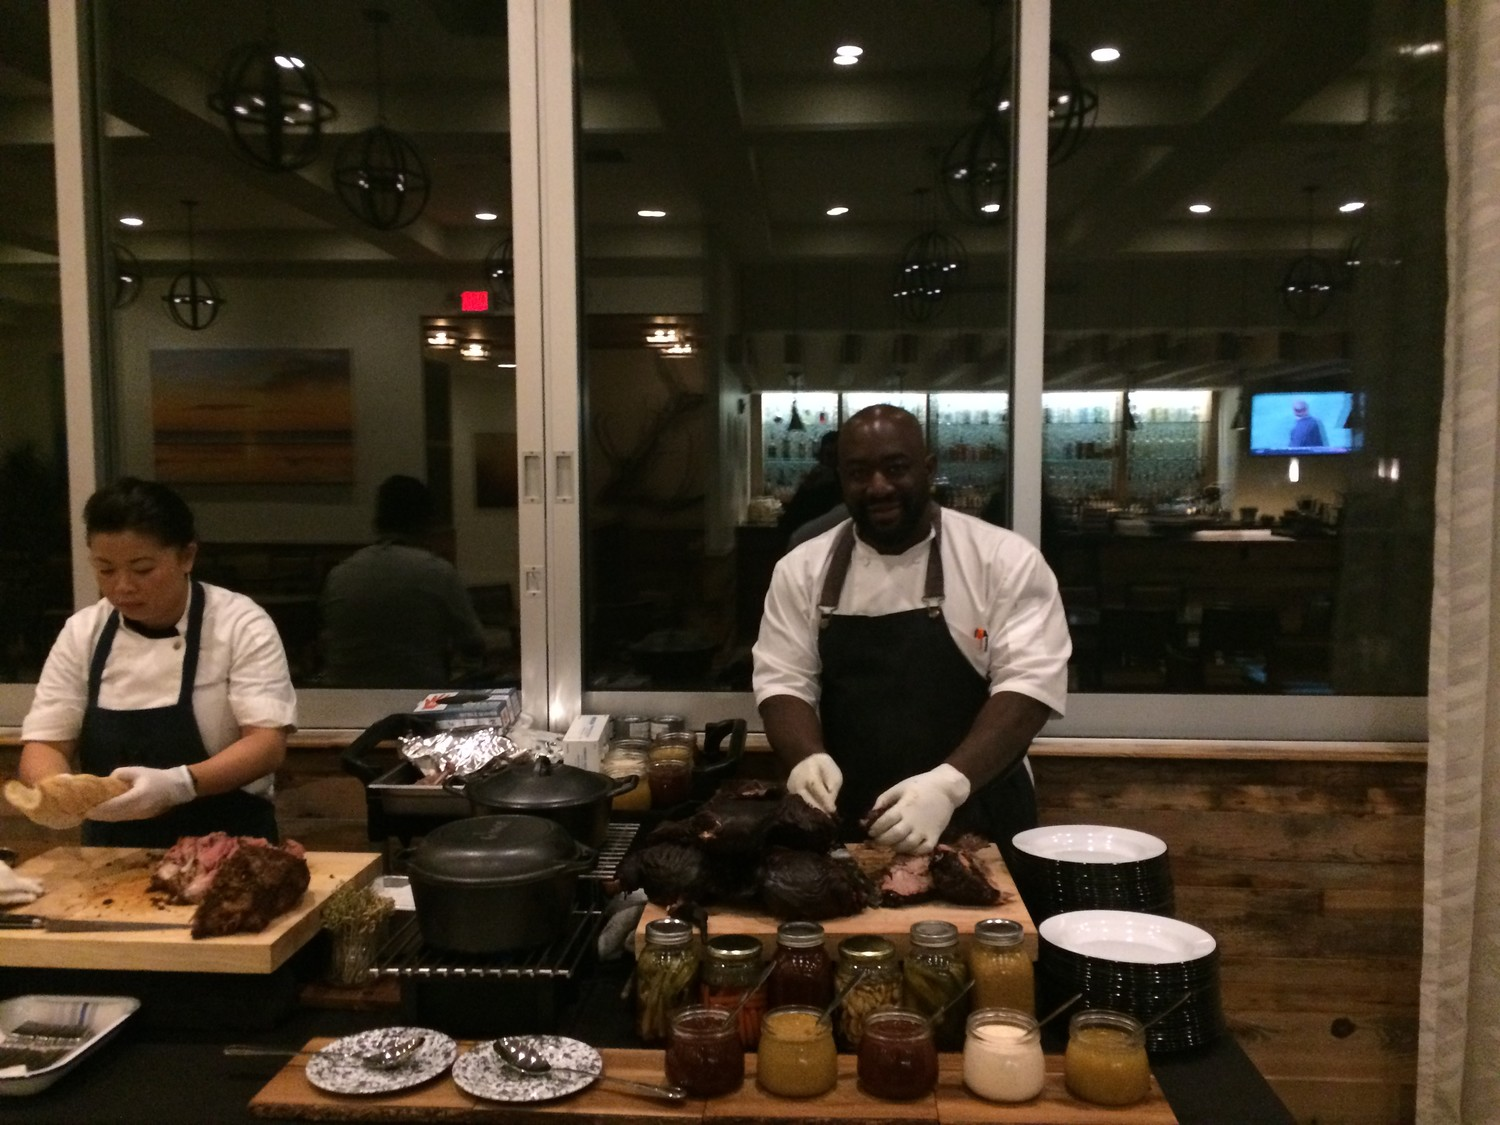 Chef Gilbert prepares a pork dinner at the Southern Kitchen opening preview event.